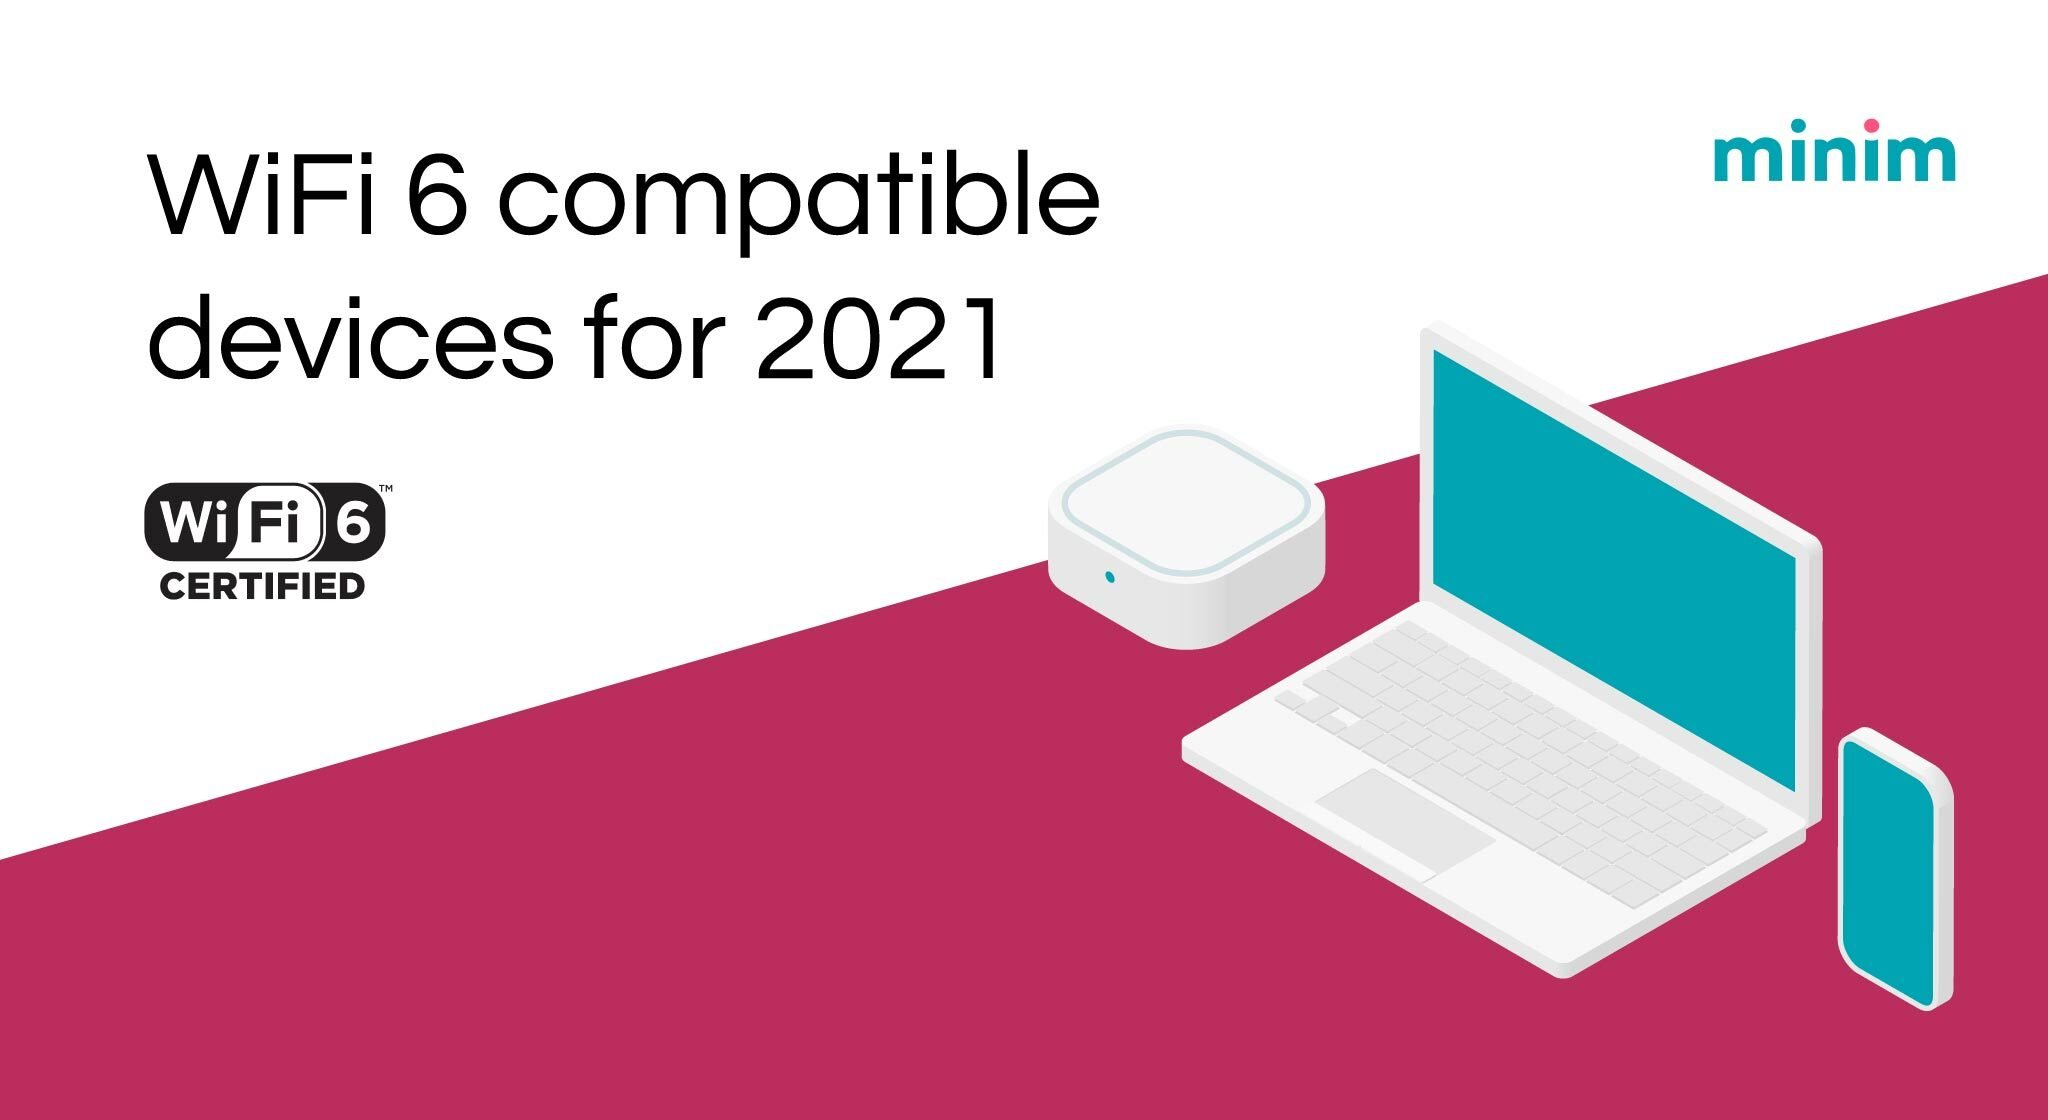 WiFi 6 compatible devices for 2021